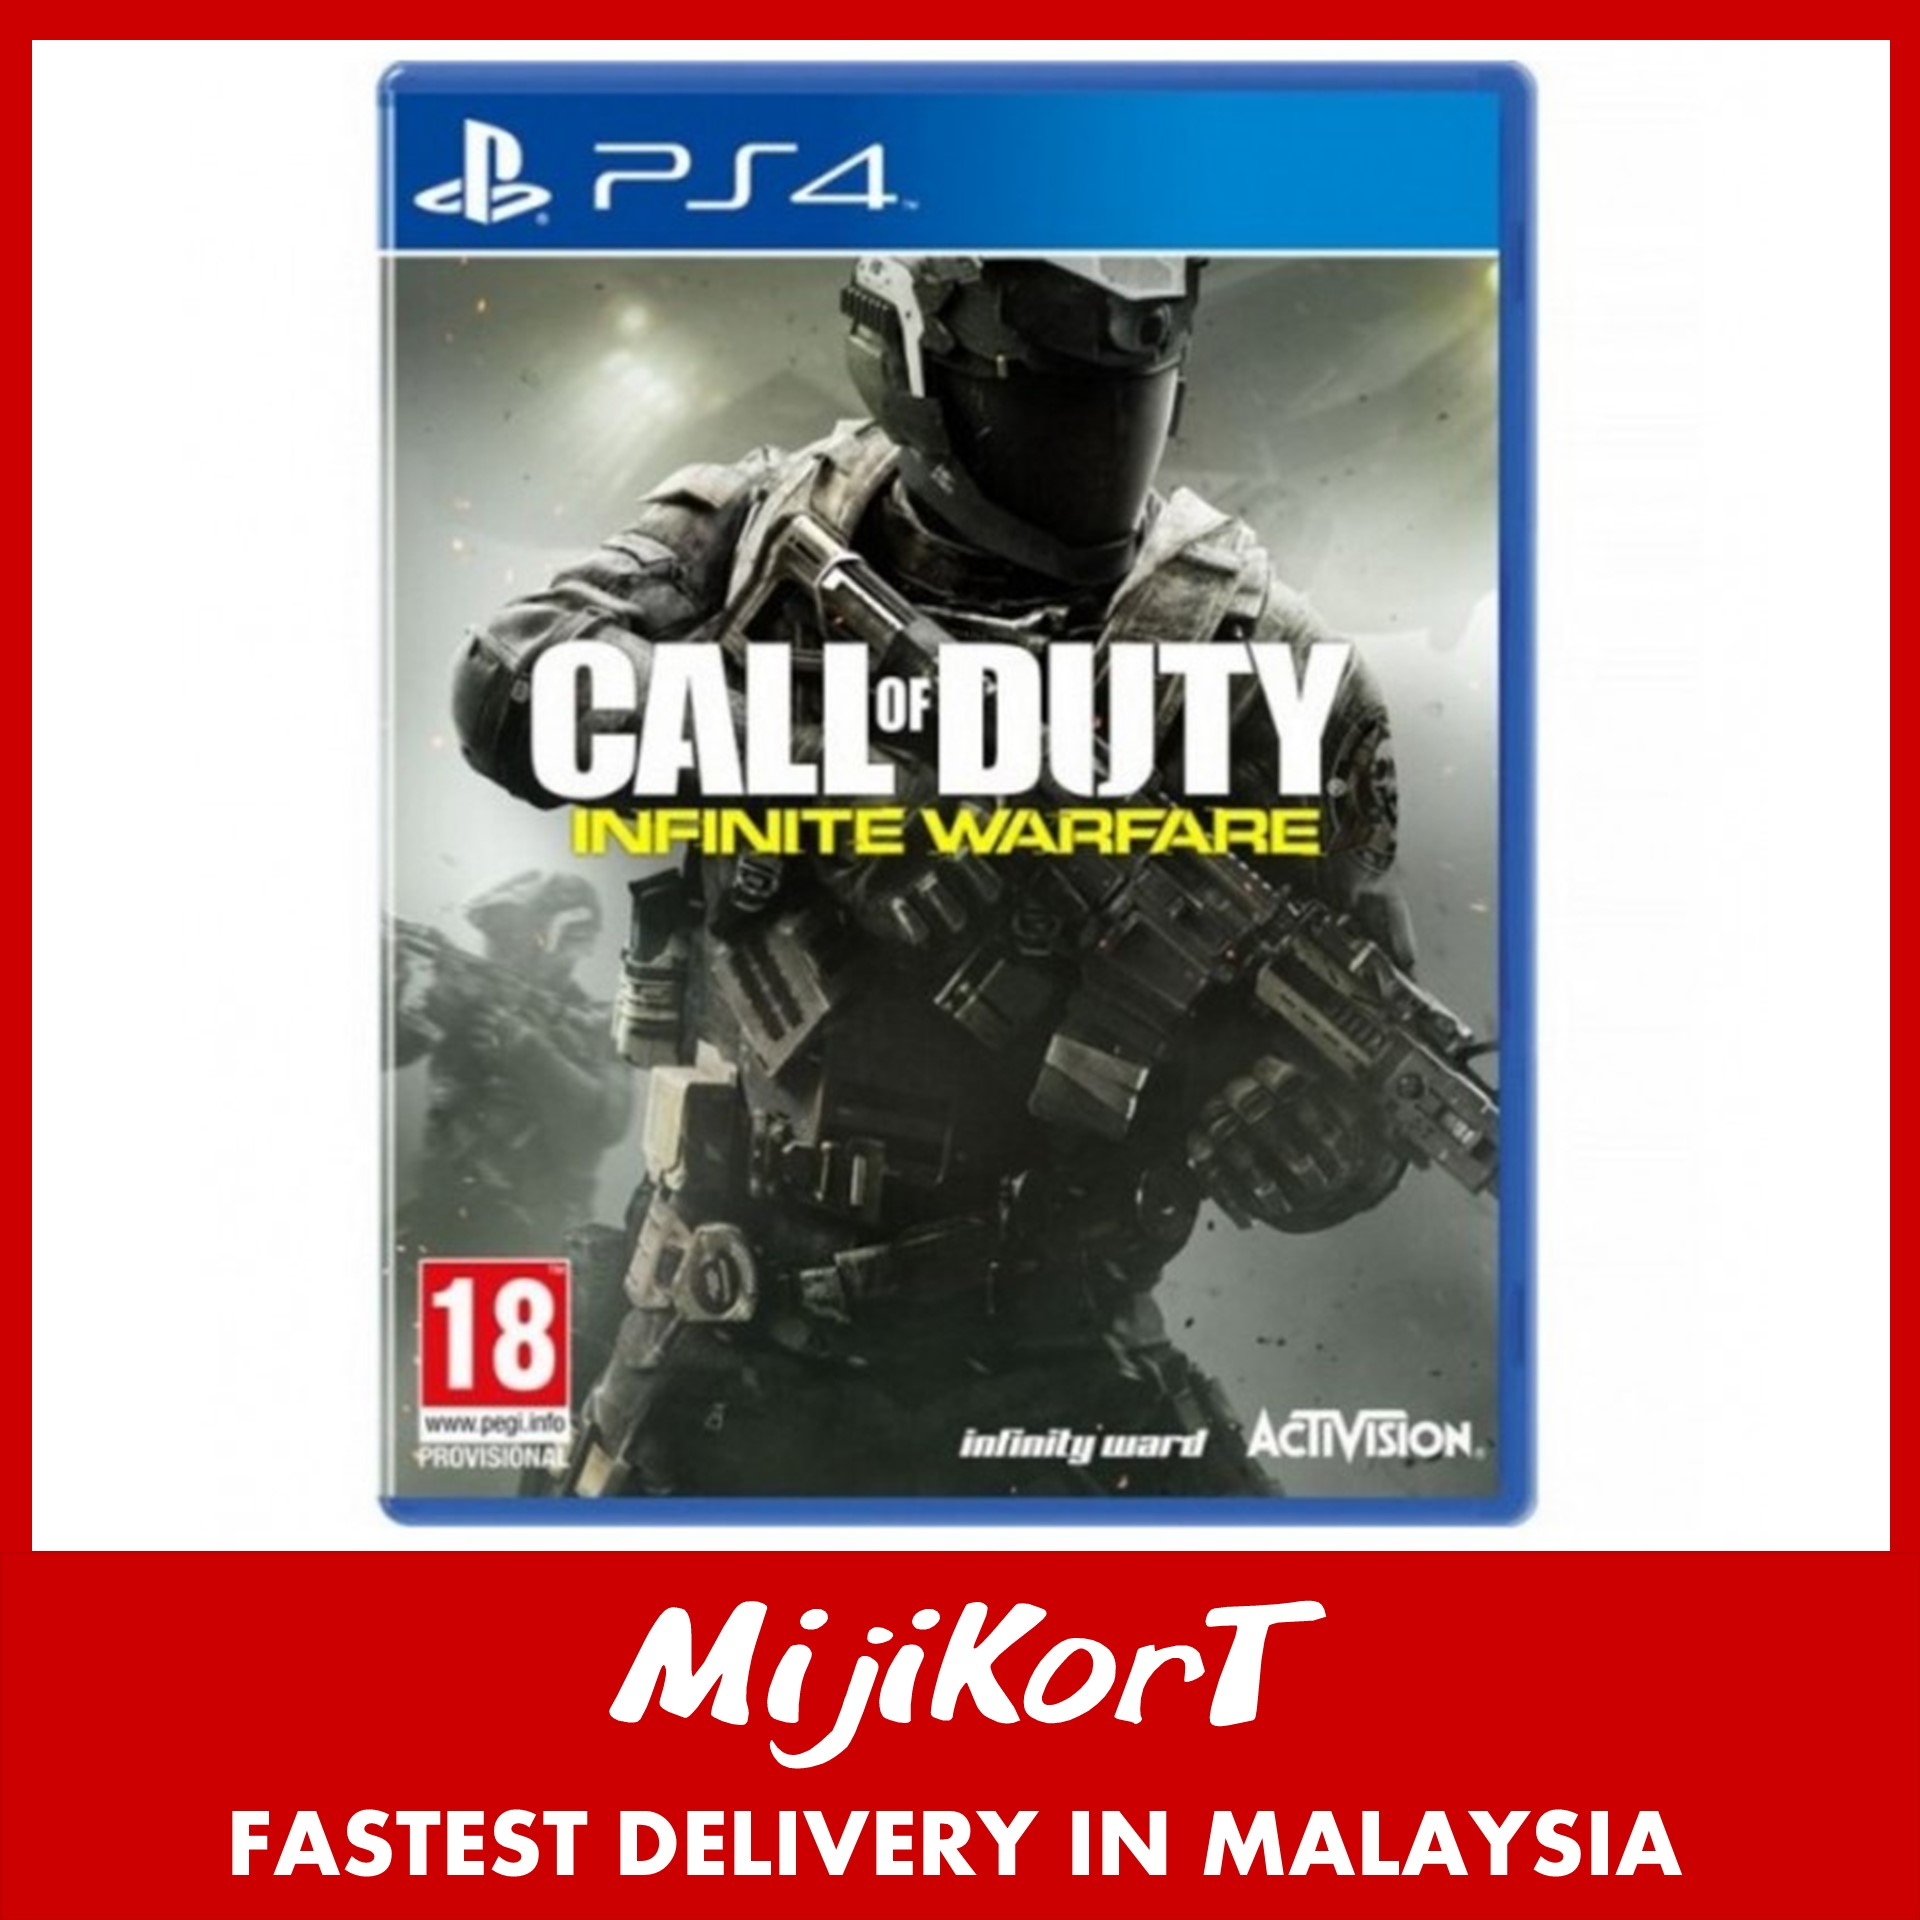 Ps4 Call Of Duty Infinite Warfare R2 End 8 27 2020 545 Pm Game Used